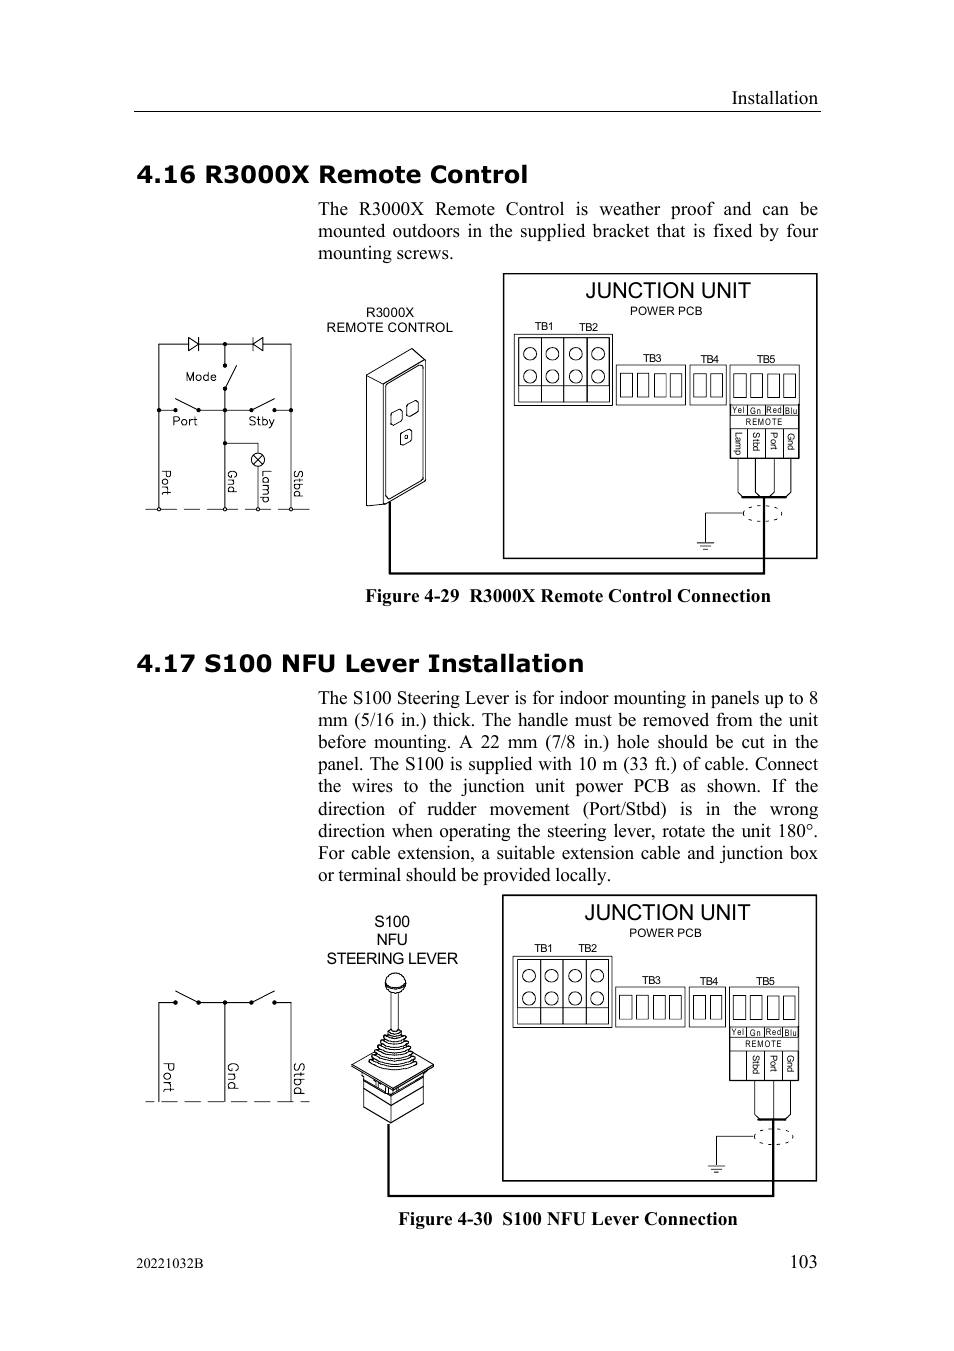 R3000x Remote Control S100 Nfu Lever Installation Junction Unit Wiring Diagram Simrad Autopilot System Ap50 User Manual Page 105 188